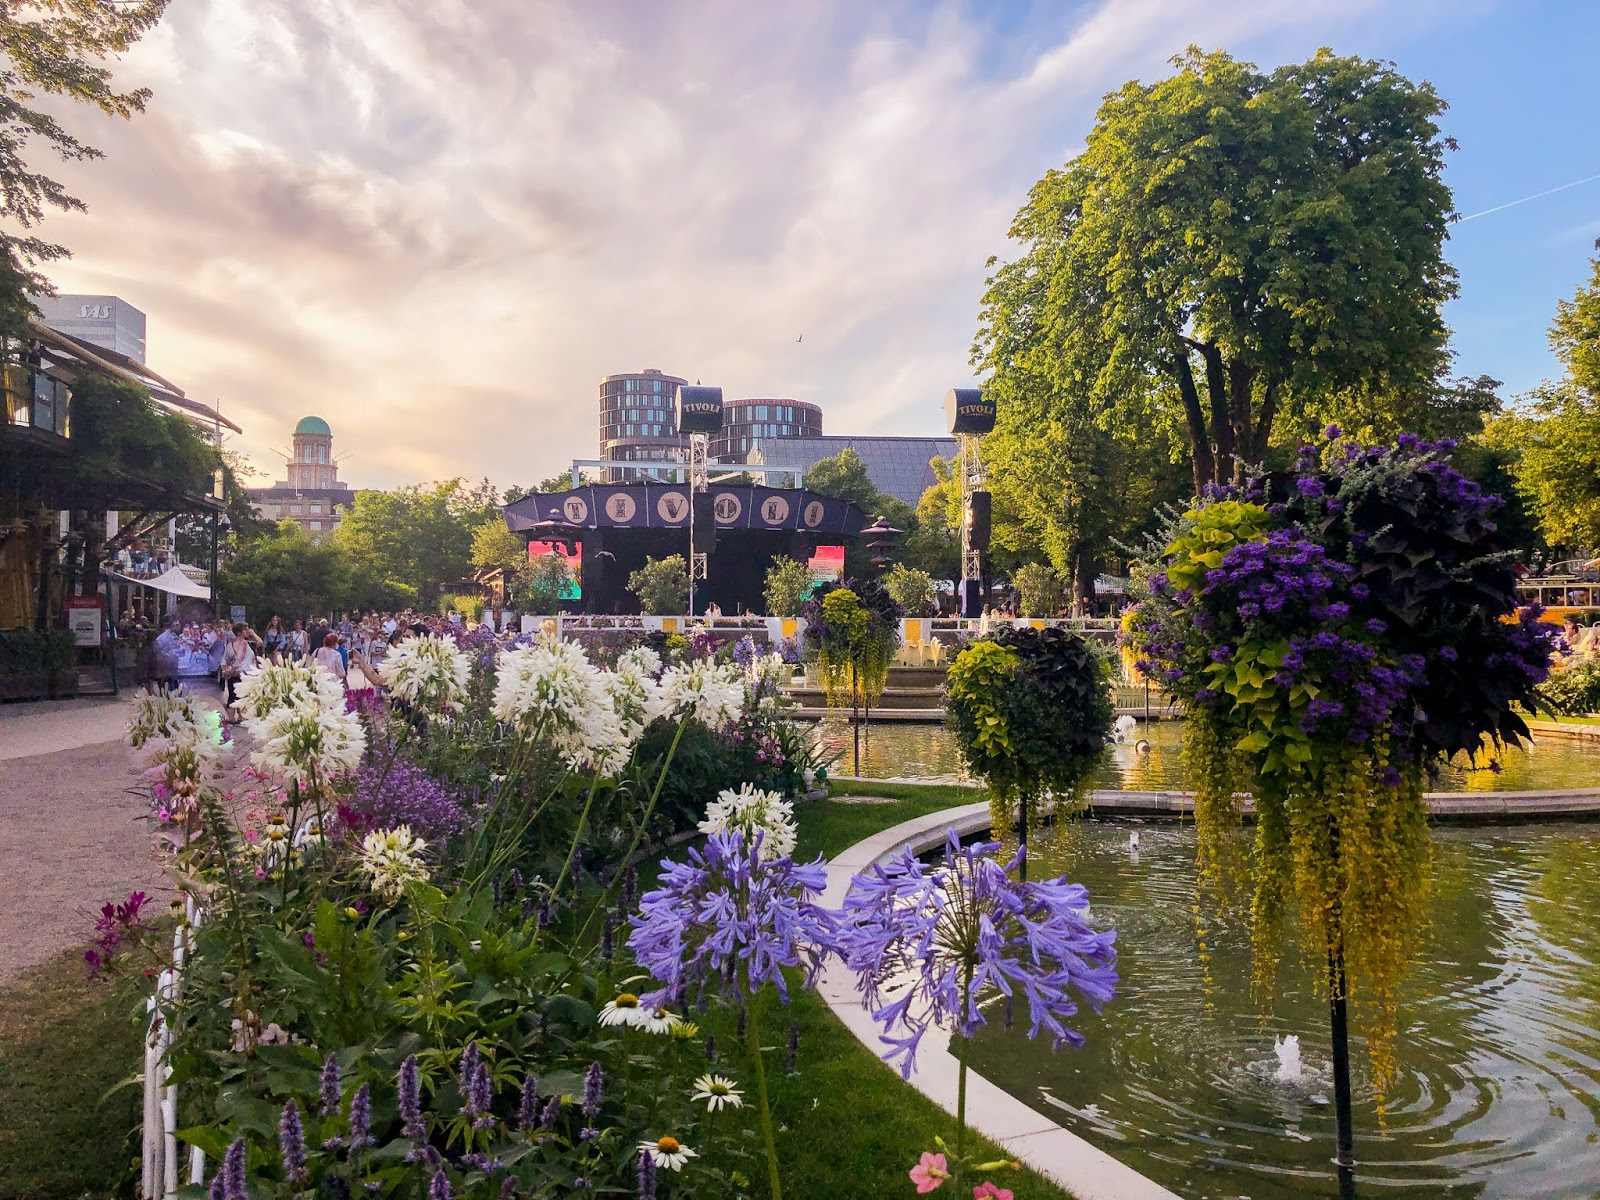 Copenhagen's Tivoli gardens main stage against pastel sunset sky and colourful flowers in the foreground